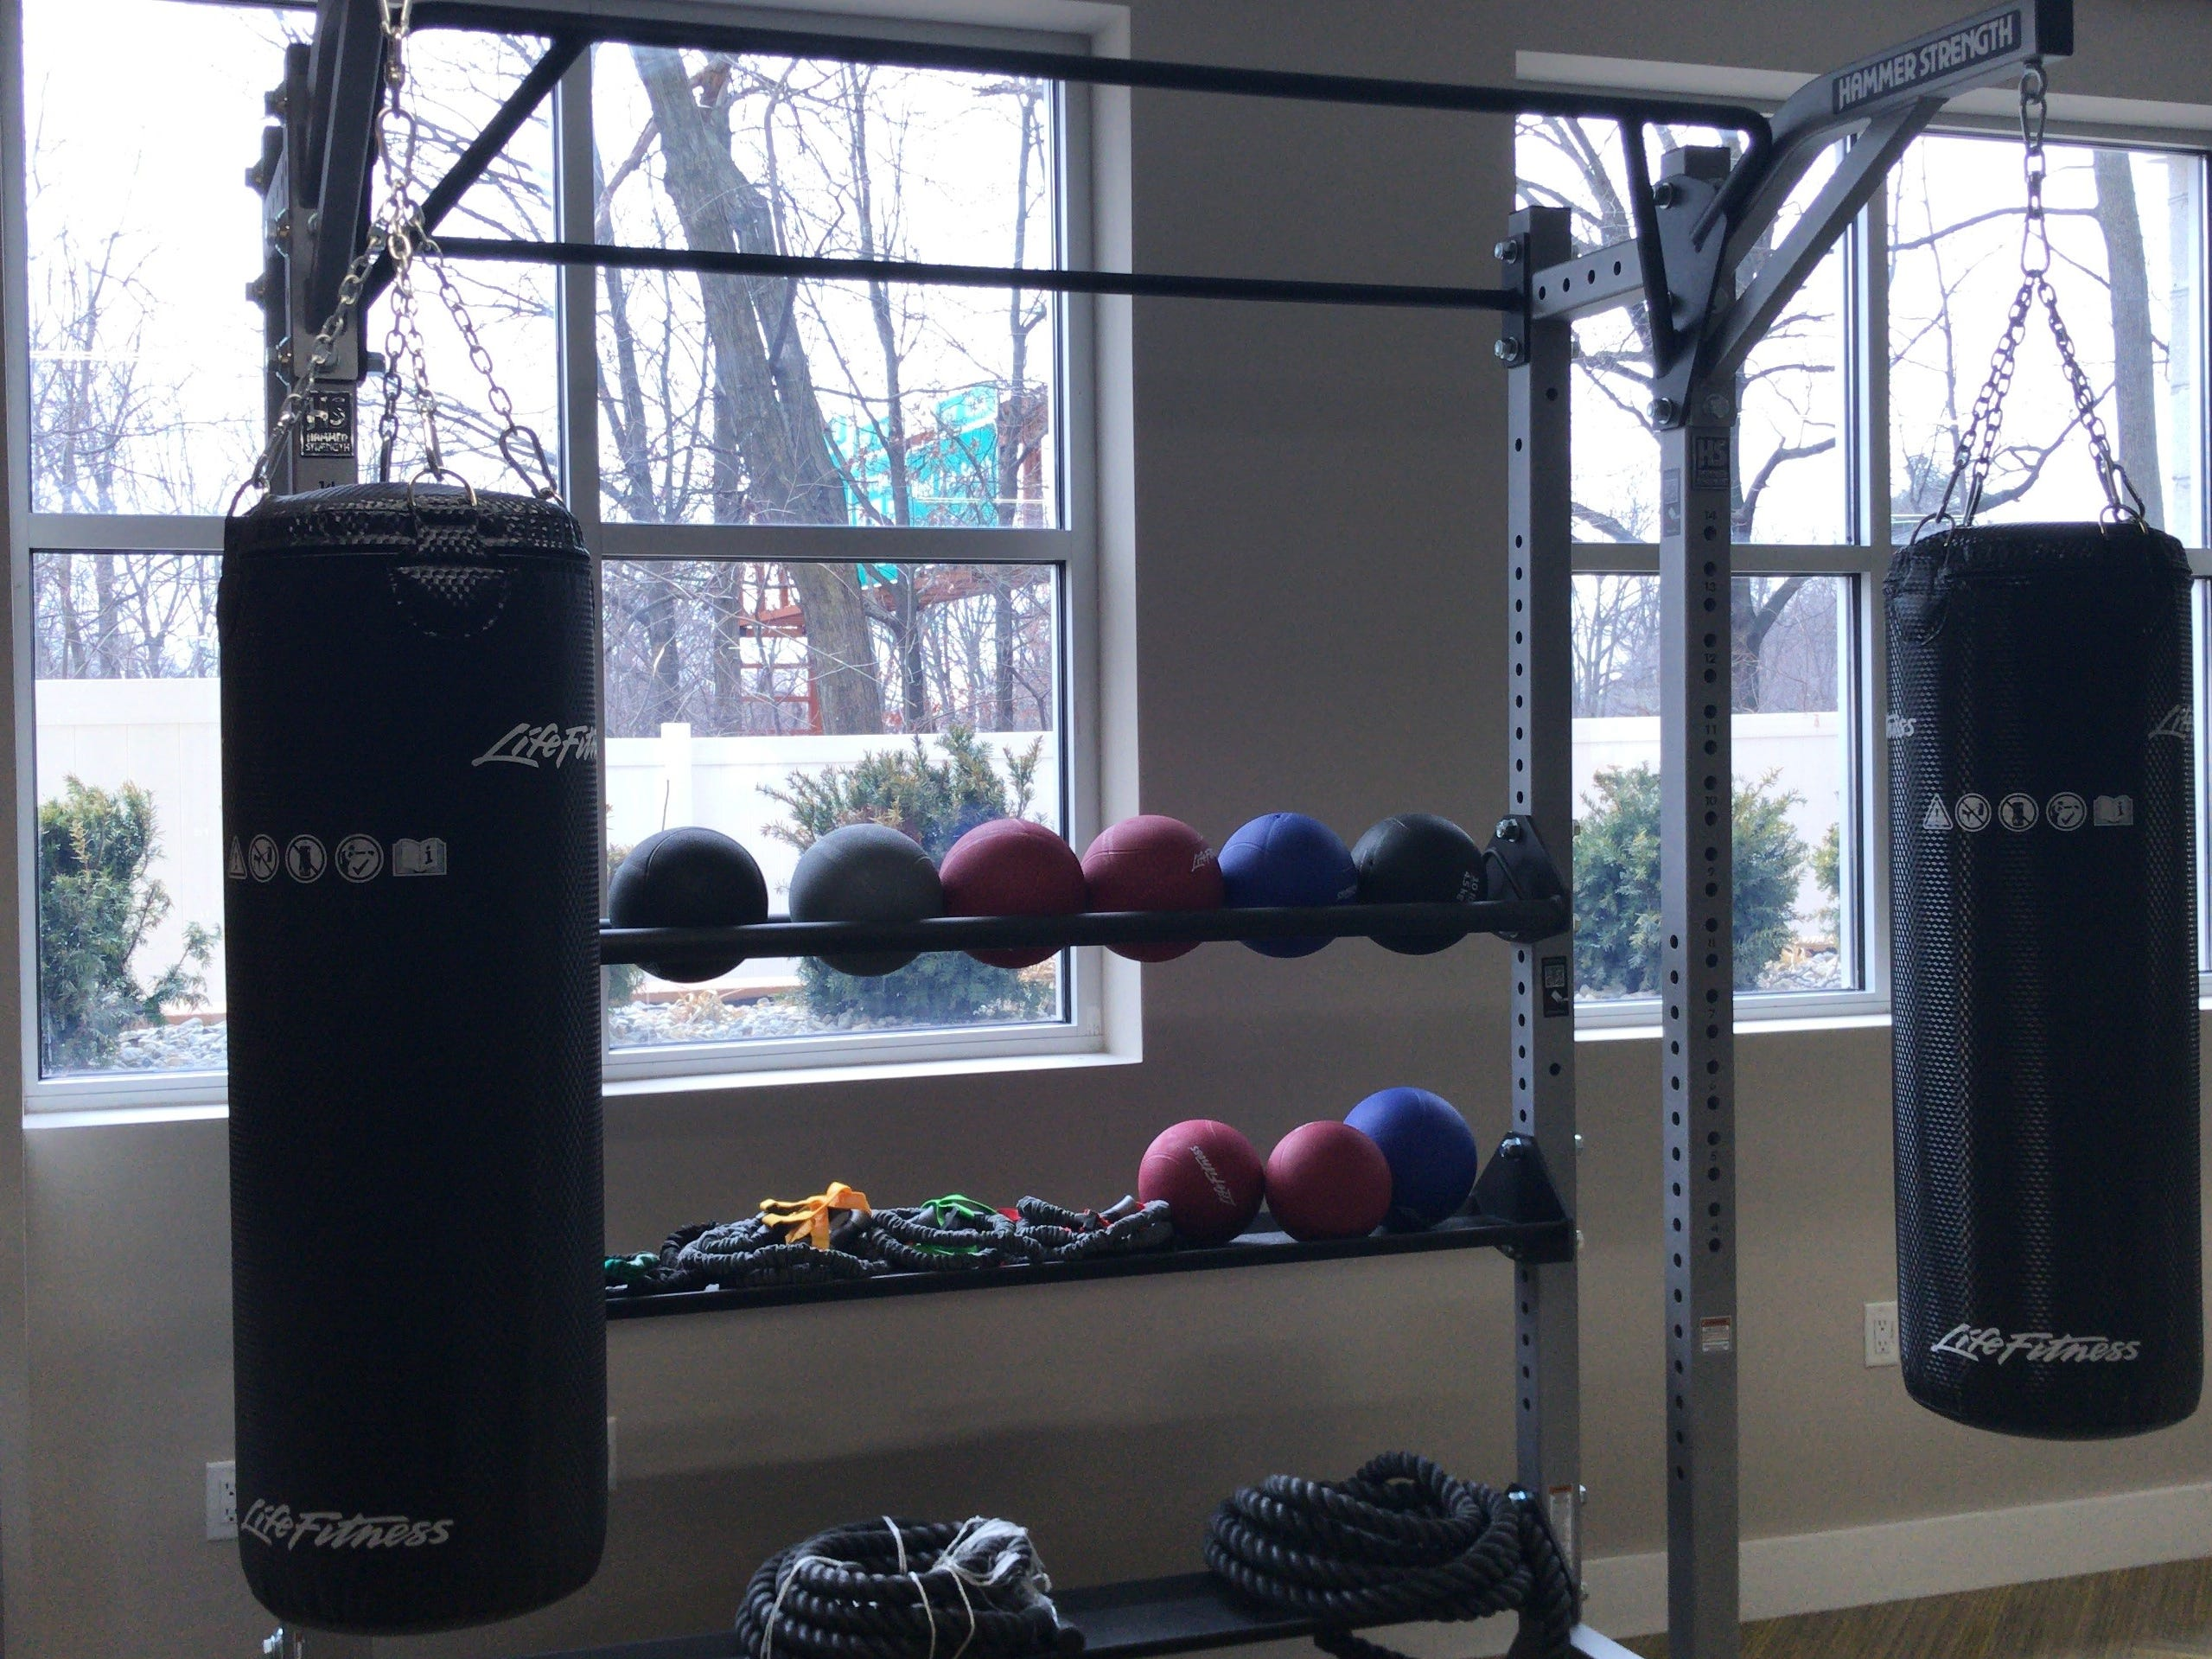 The well-equipped gym of the luxury apartments at The Grande at MetroPark is just one of many amenities. Units are available now, while others are being constructed.